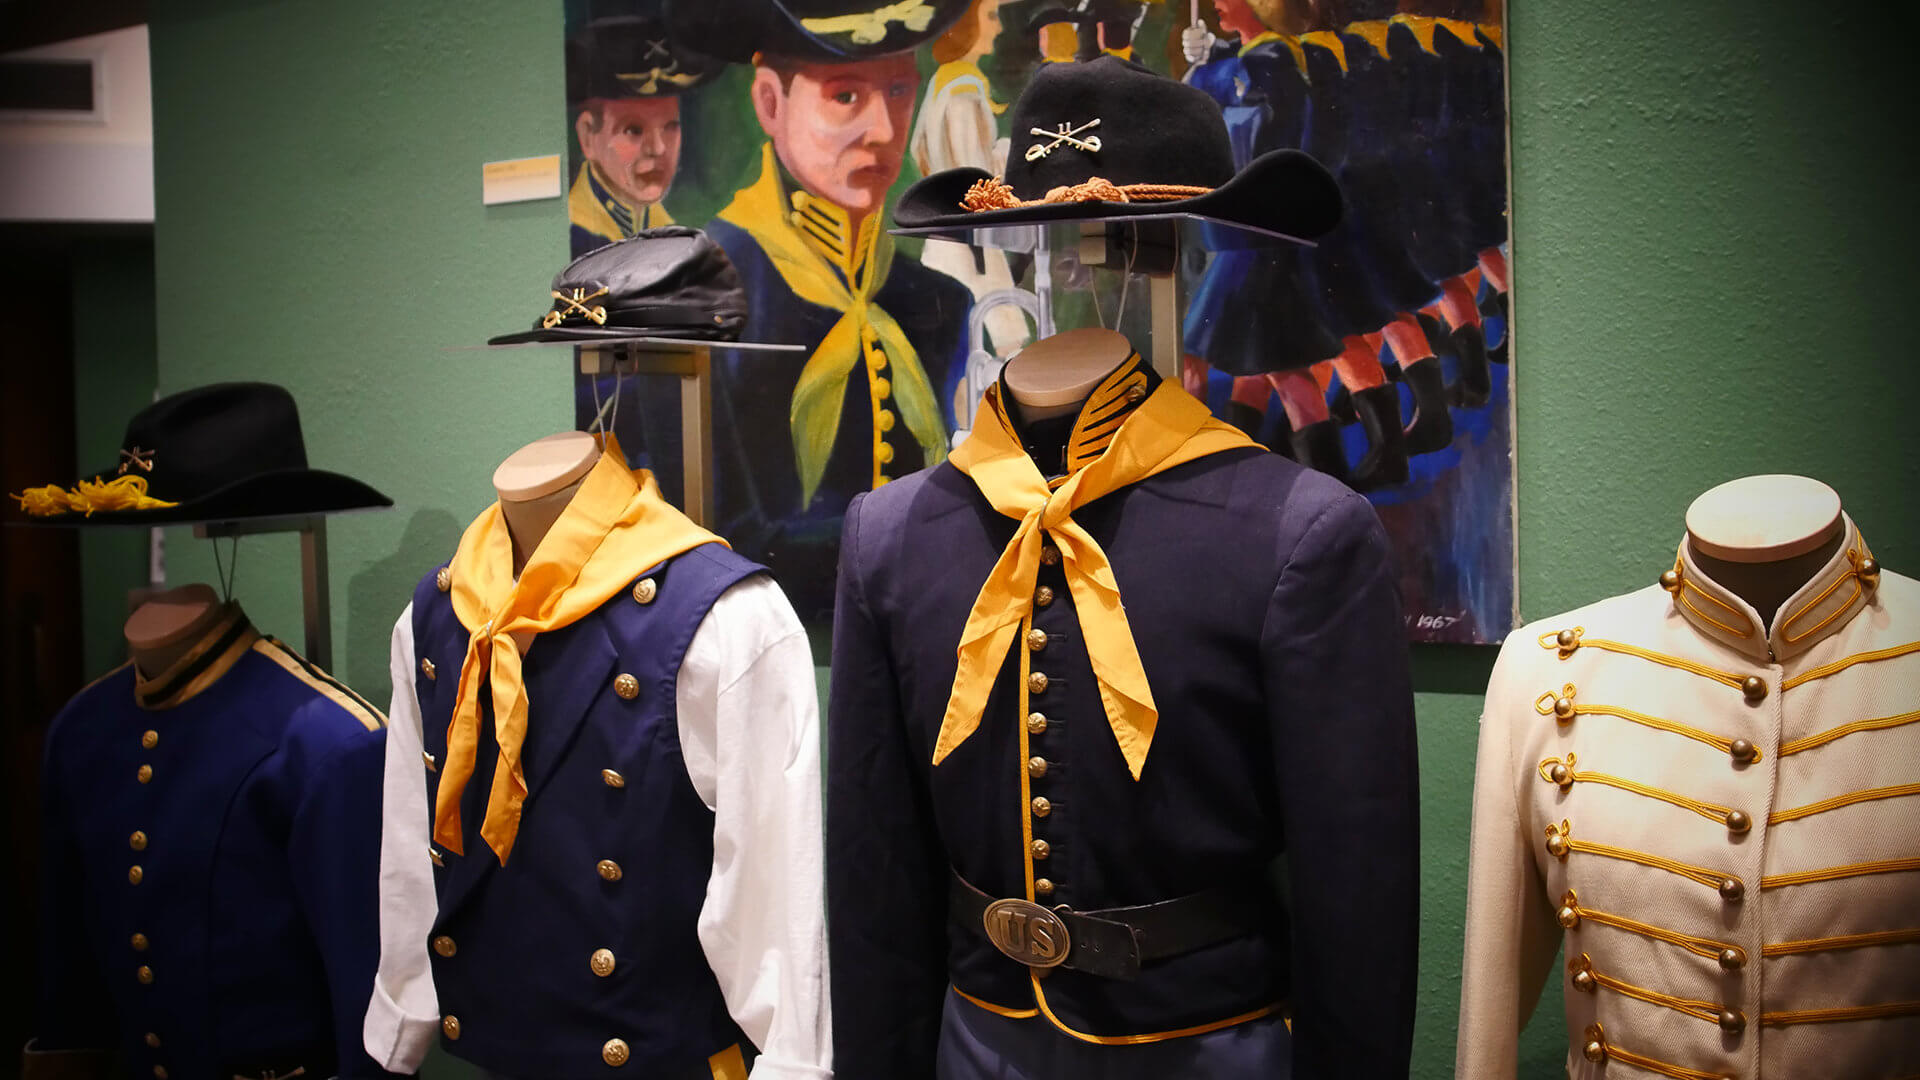 The Troopers are coming to a new museum exhibit